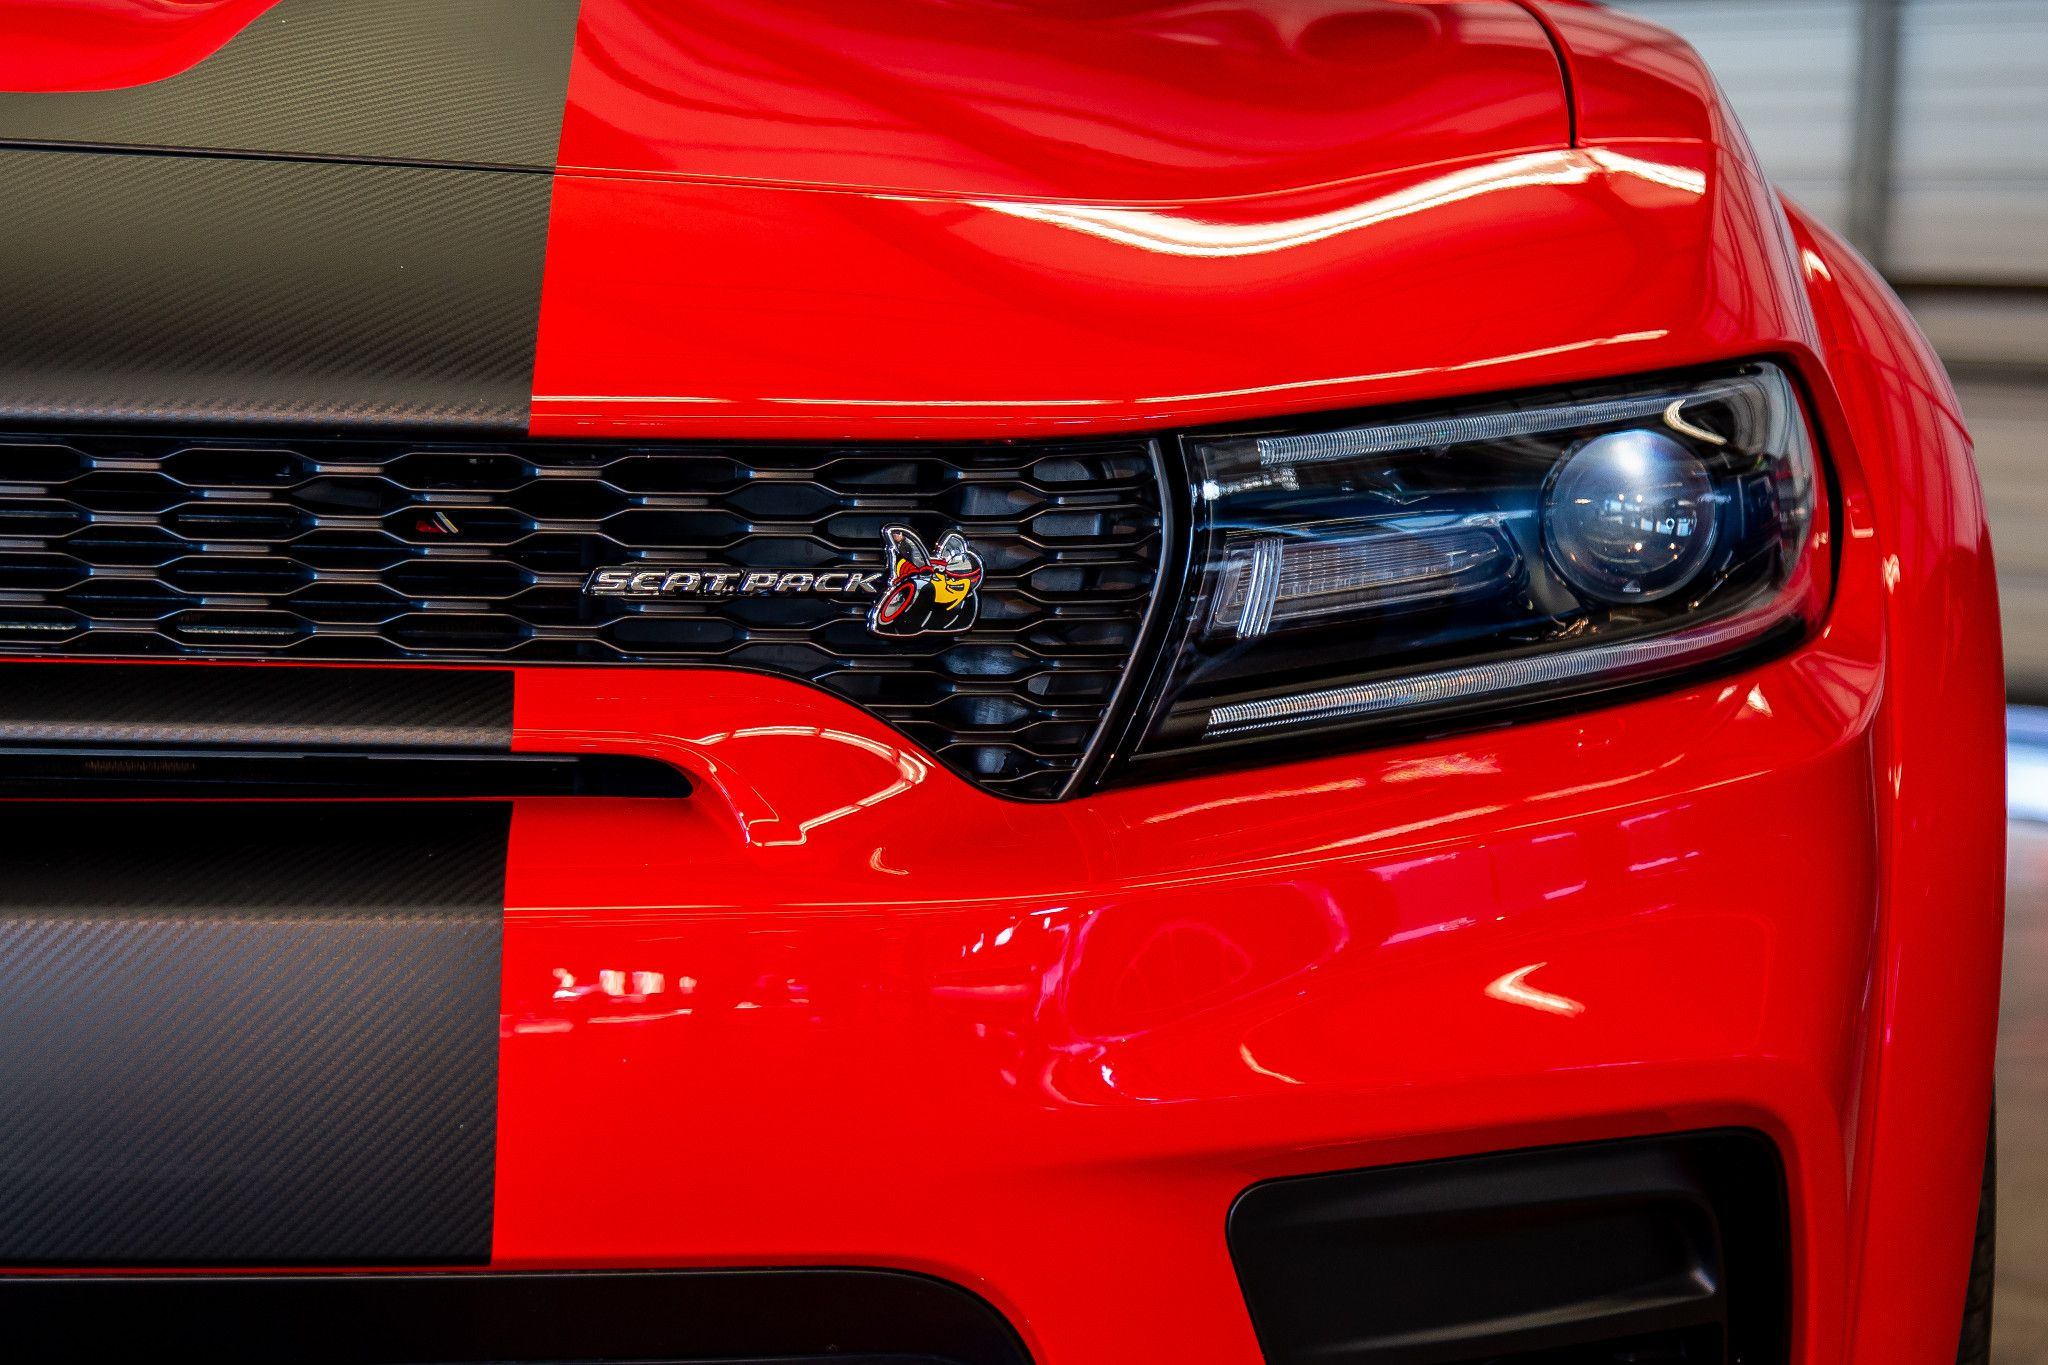 2020 Dodge Charger Scat Pack And Hellcat Widebody Review Which To Buy News From Cars Com Dodge Charger Dodge Charger Hellcat Dodge Challenger Scat Pack